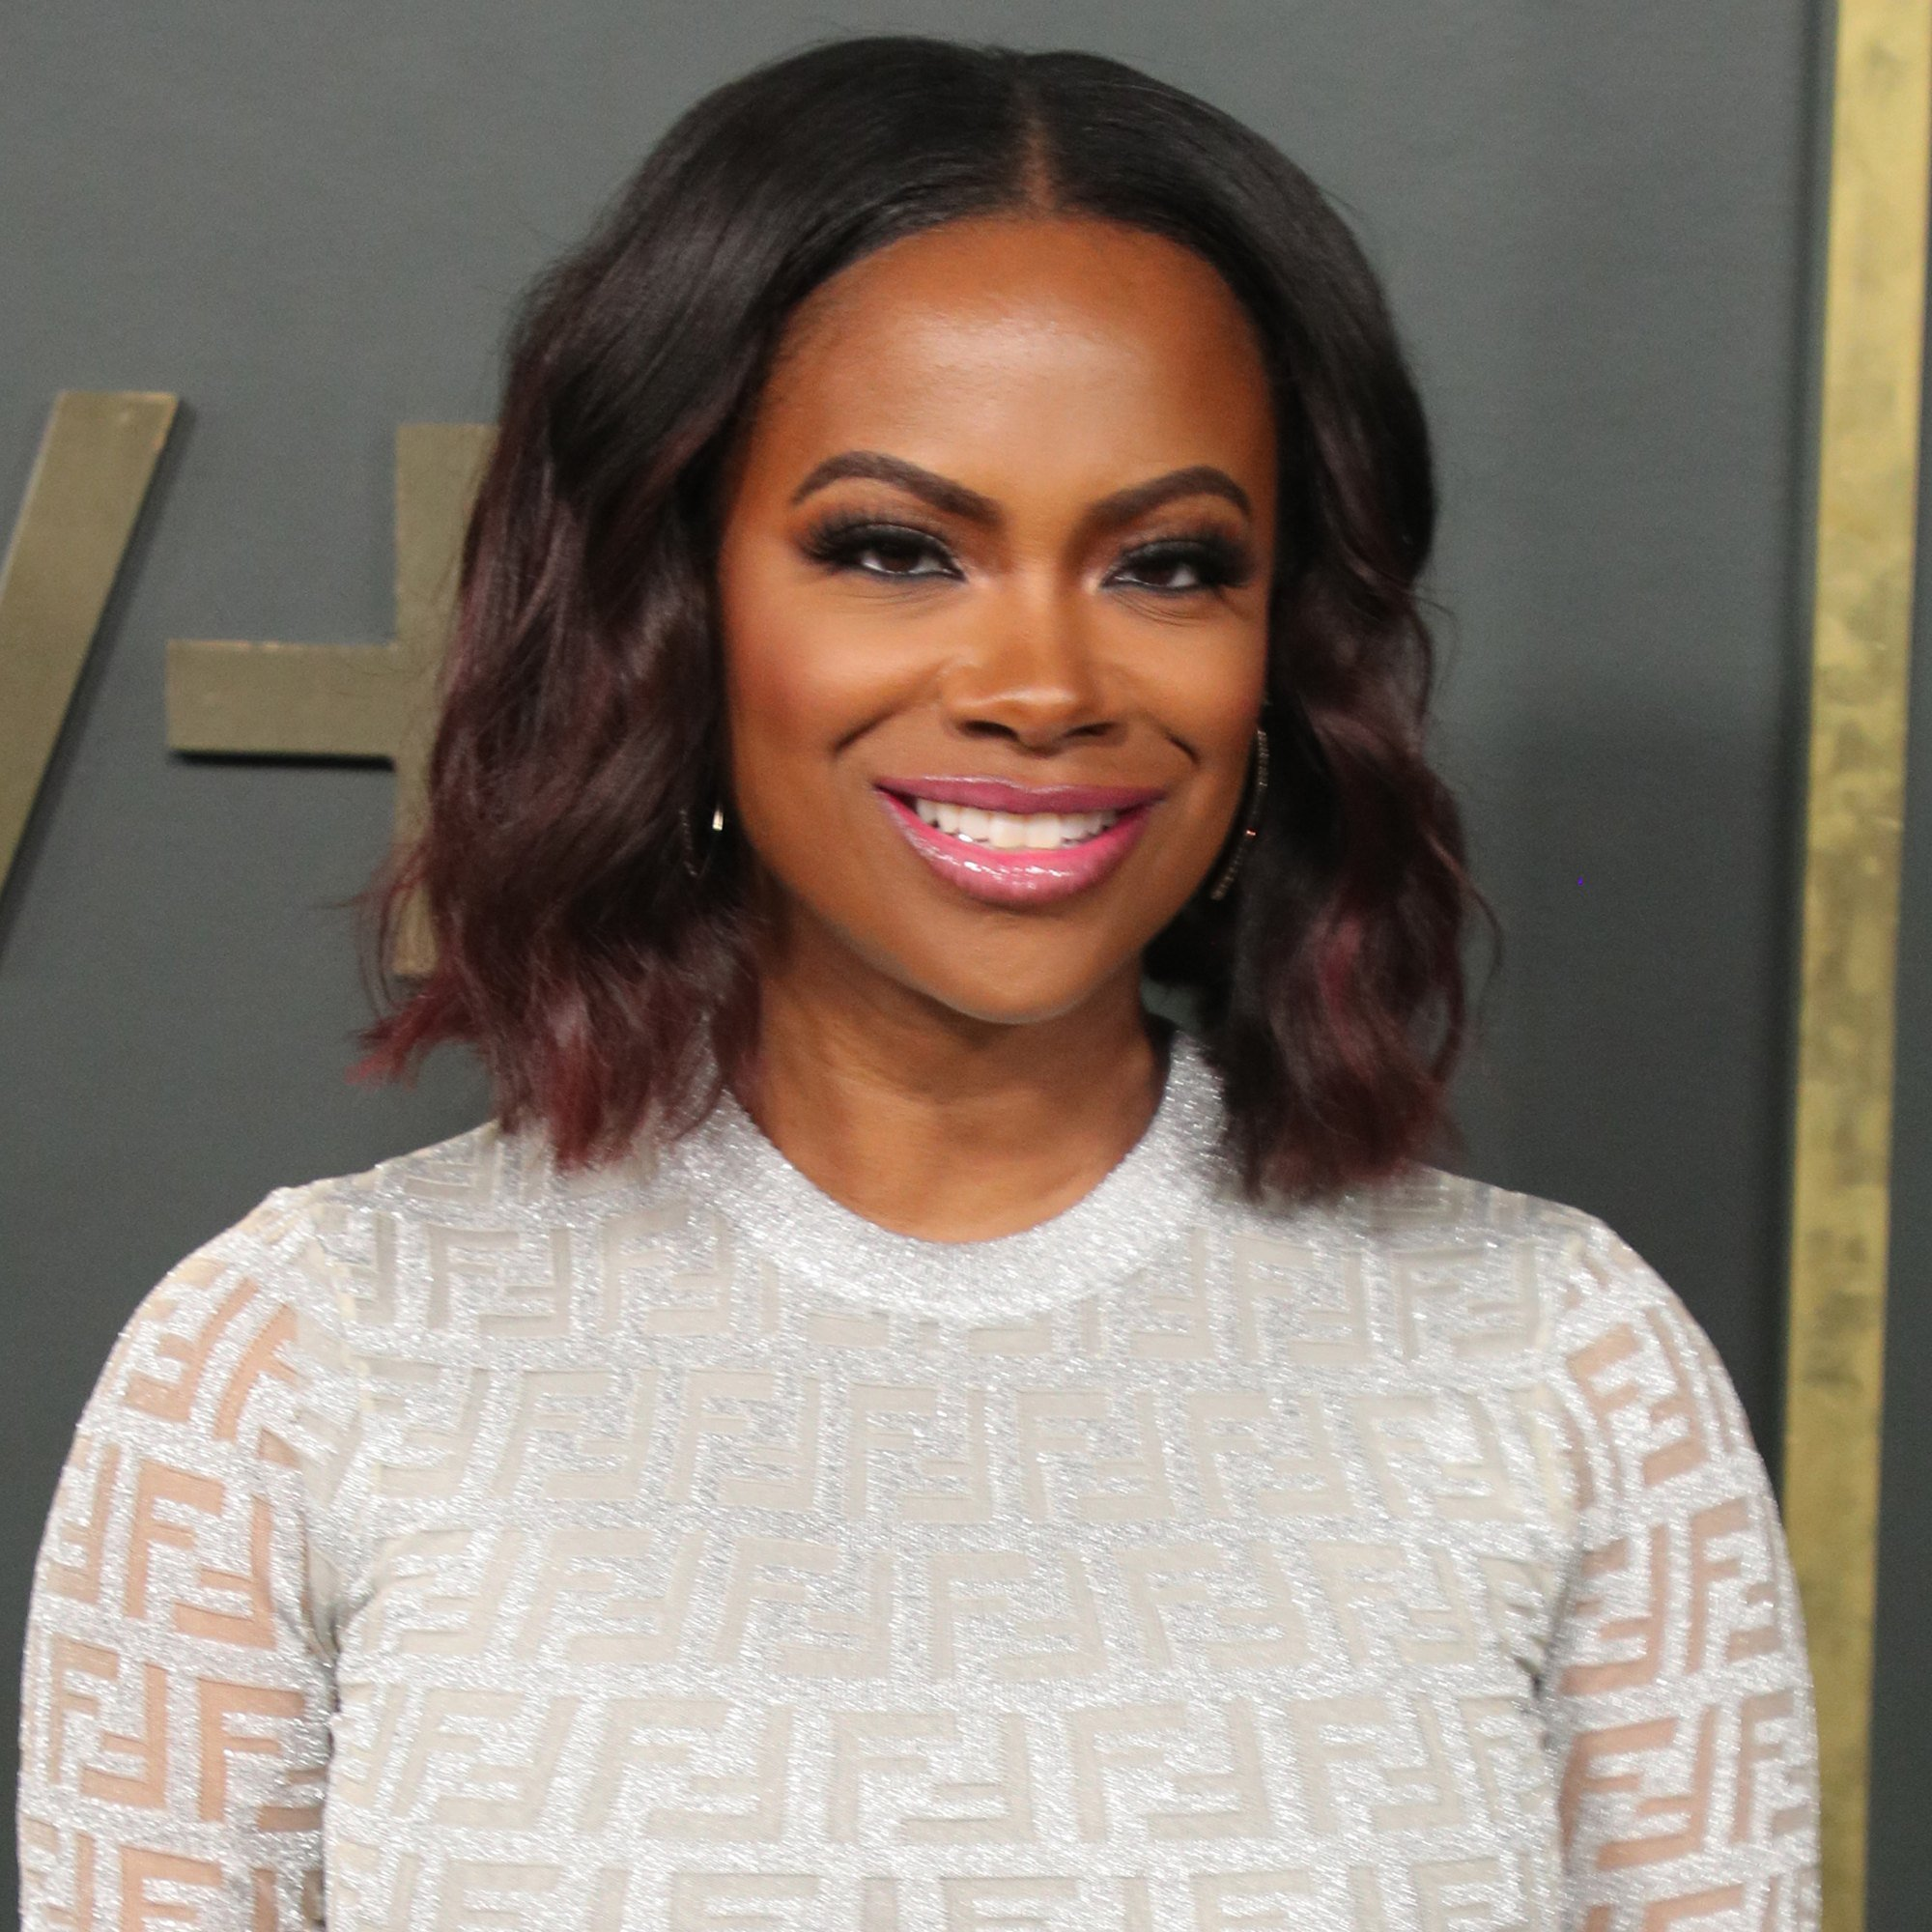 Kandi Burruss Wishes One Of Her BFFs A Happy Anniversary – See The Gorgeous Photos